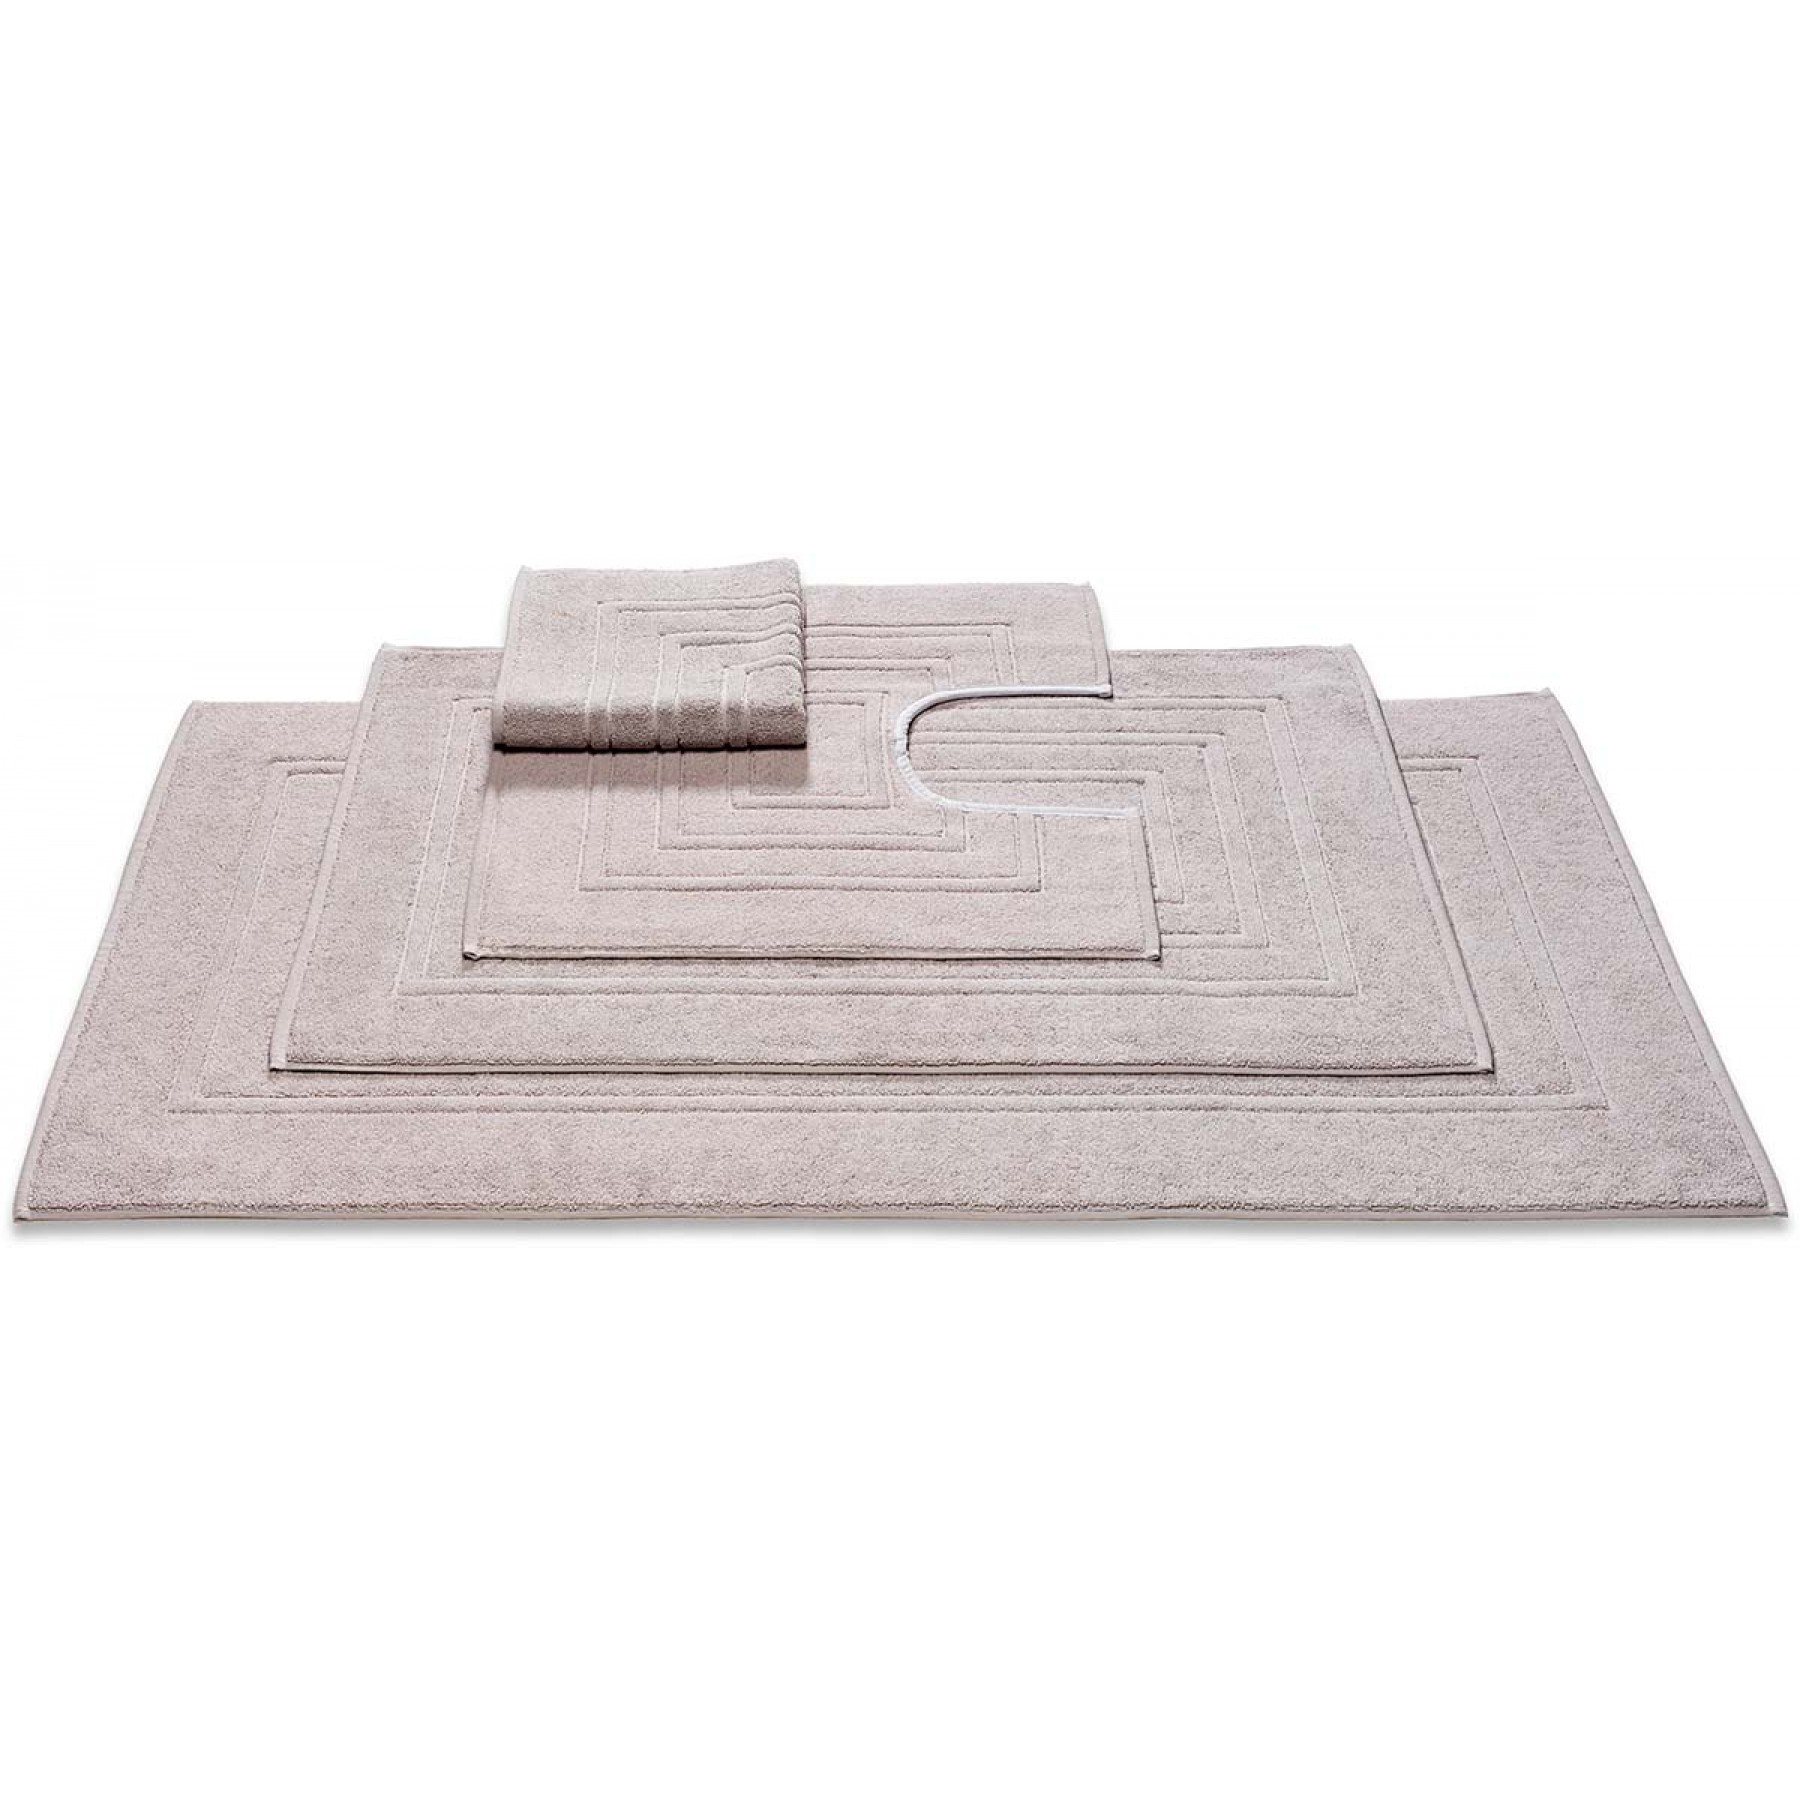 Vandyck Toiletmat Houston Stone